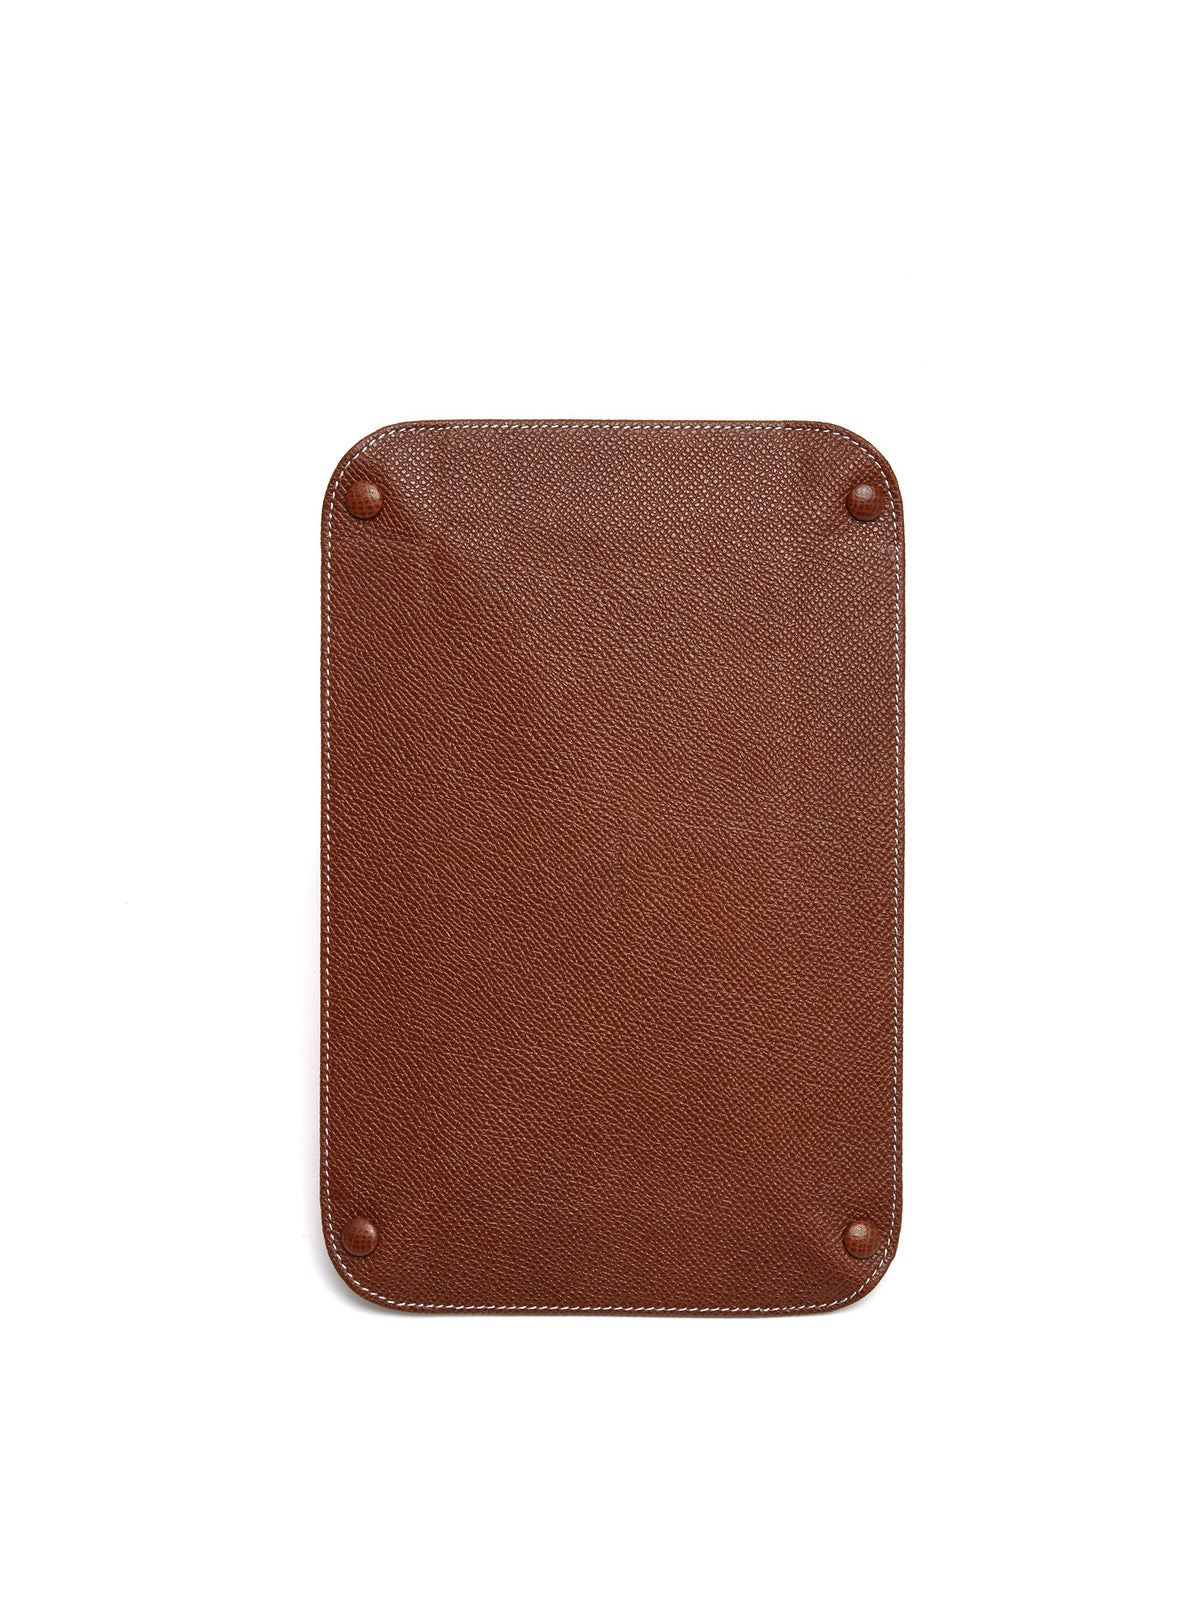 Mark Cross Medium Leather Valet Tray Saffiano Acorn Back